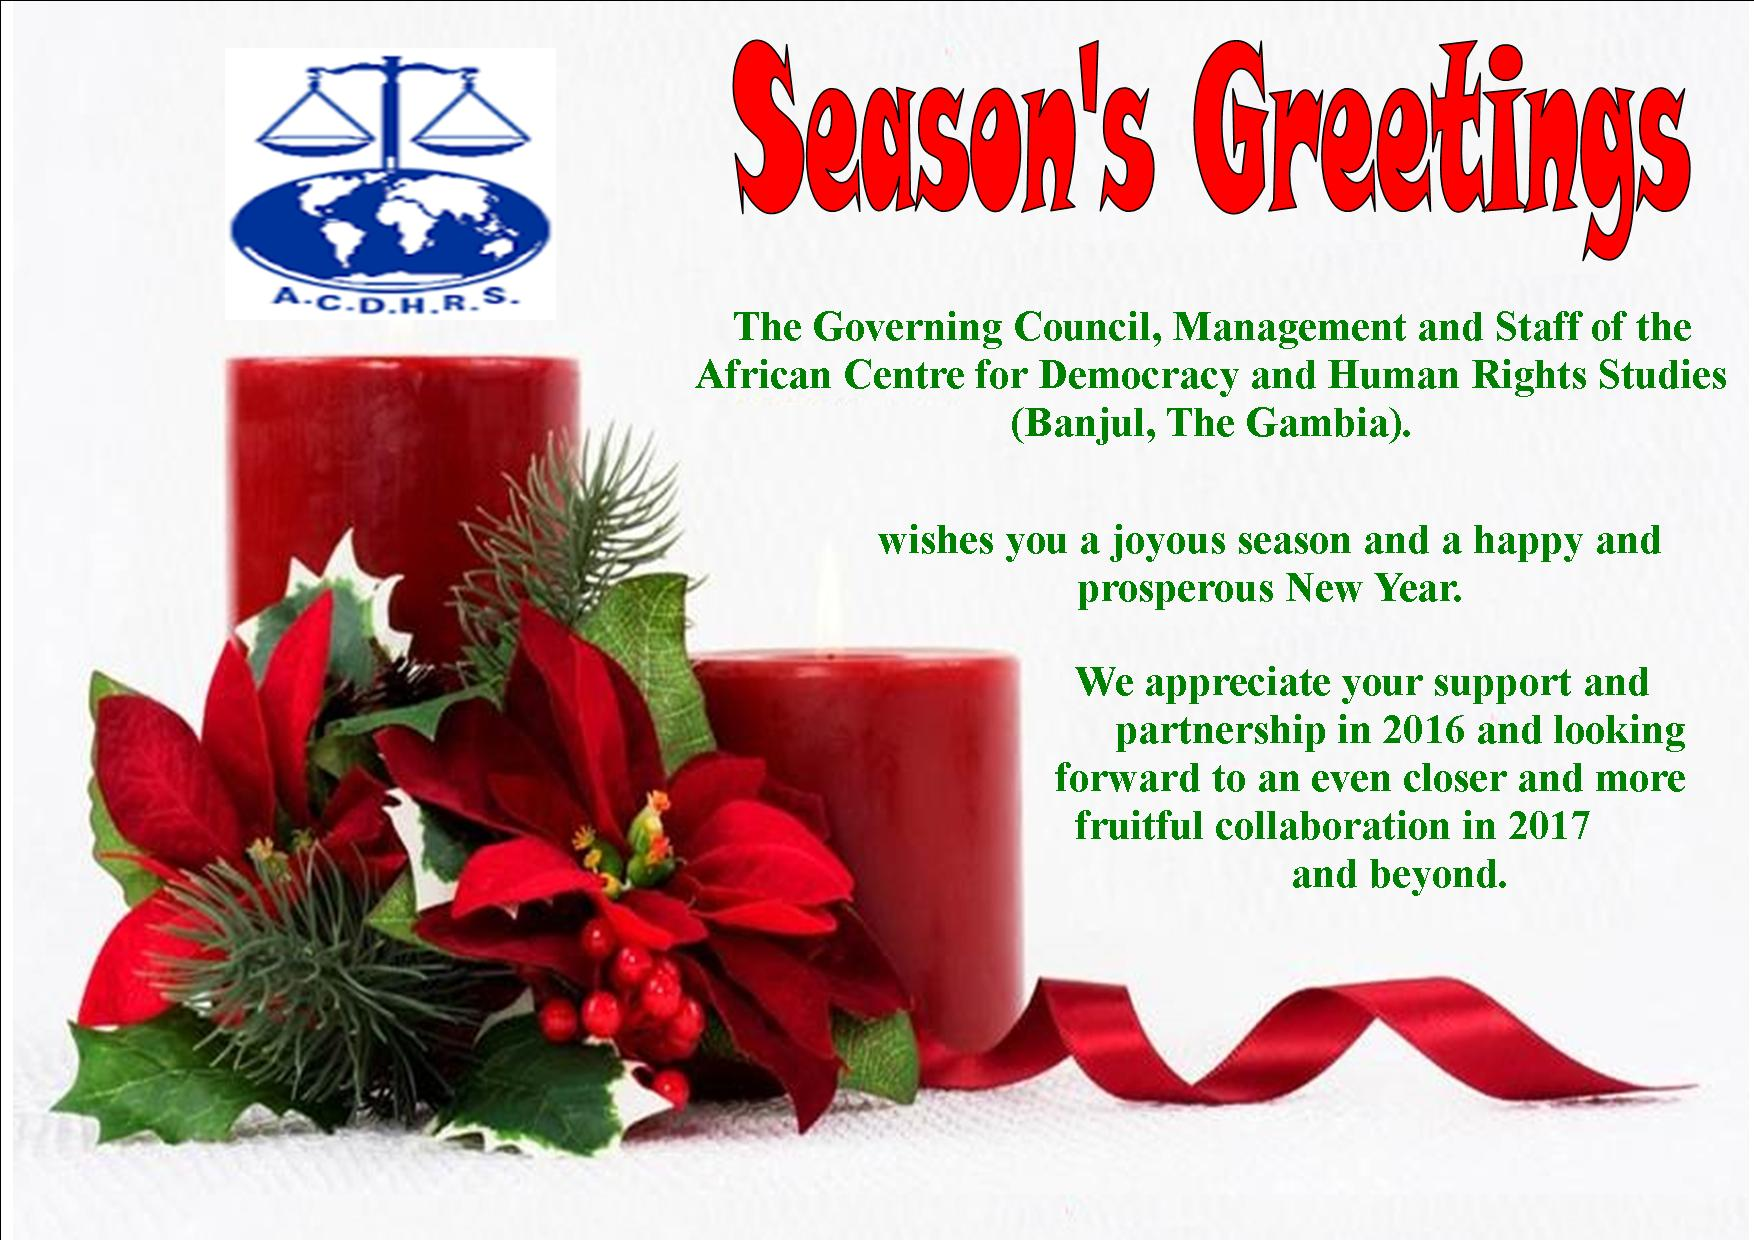 SEASONS GREETINGS The African Centre For Democracy And